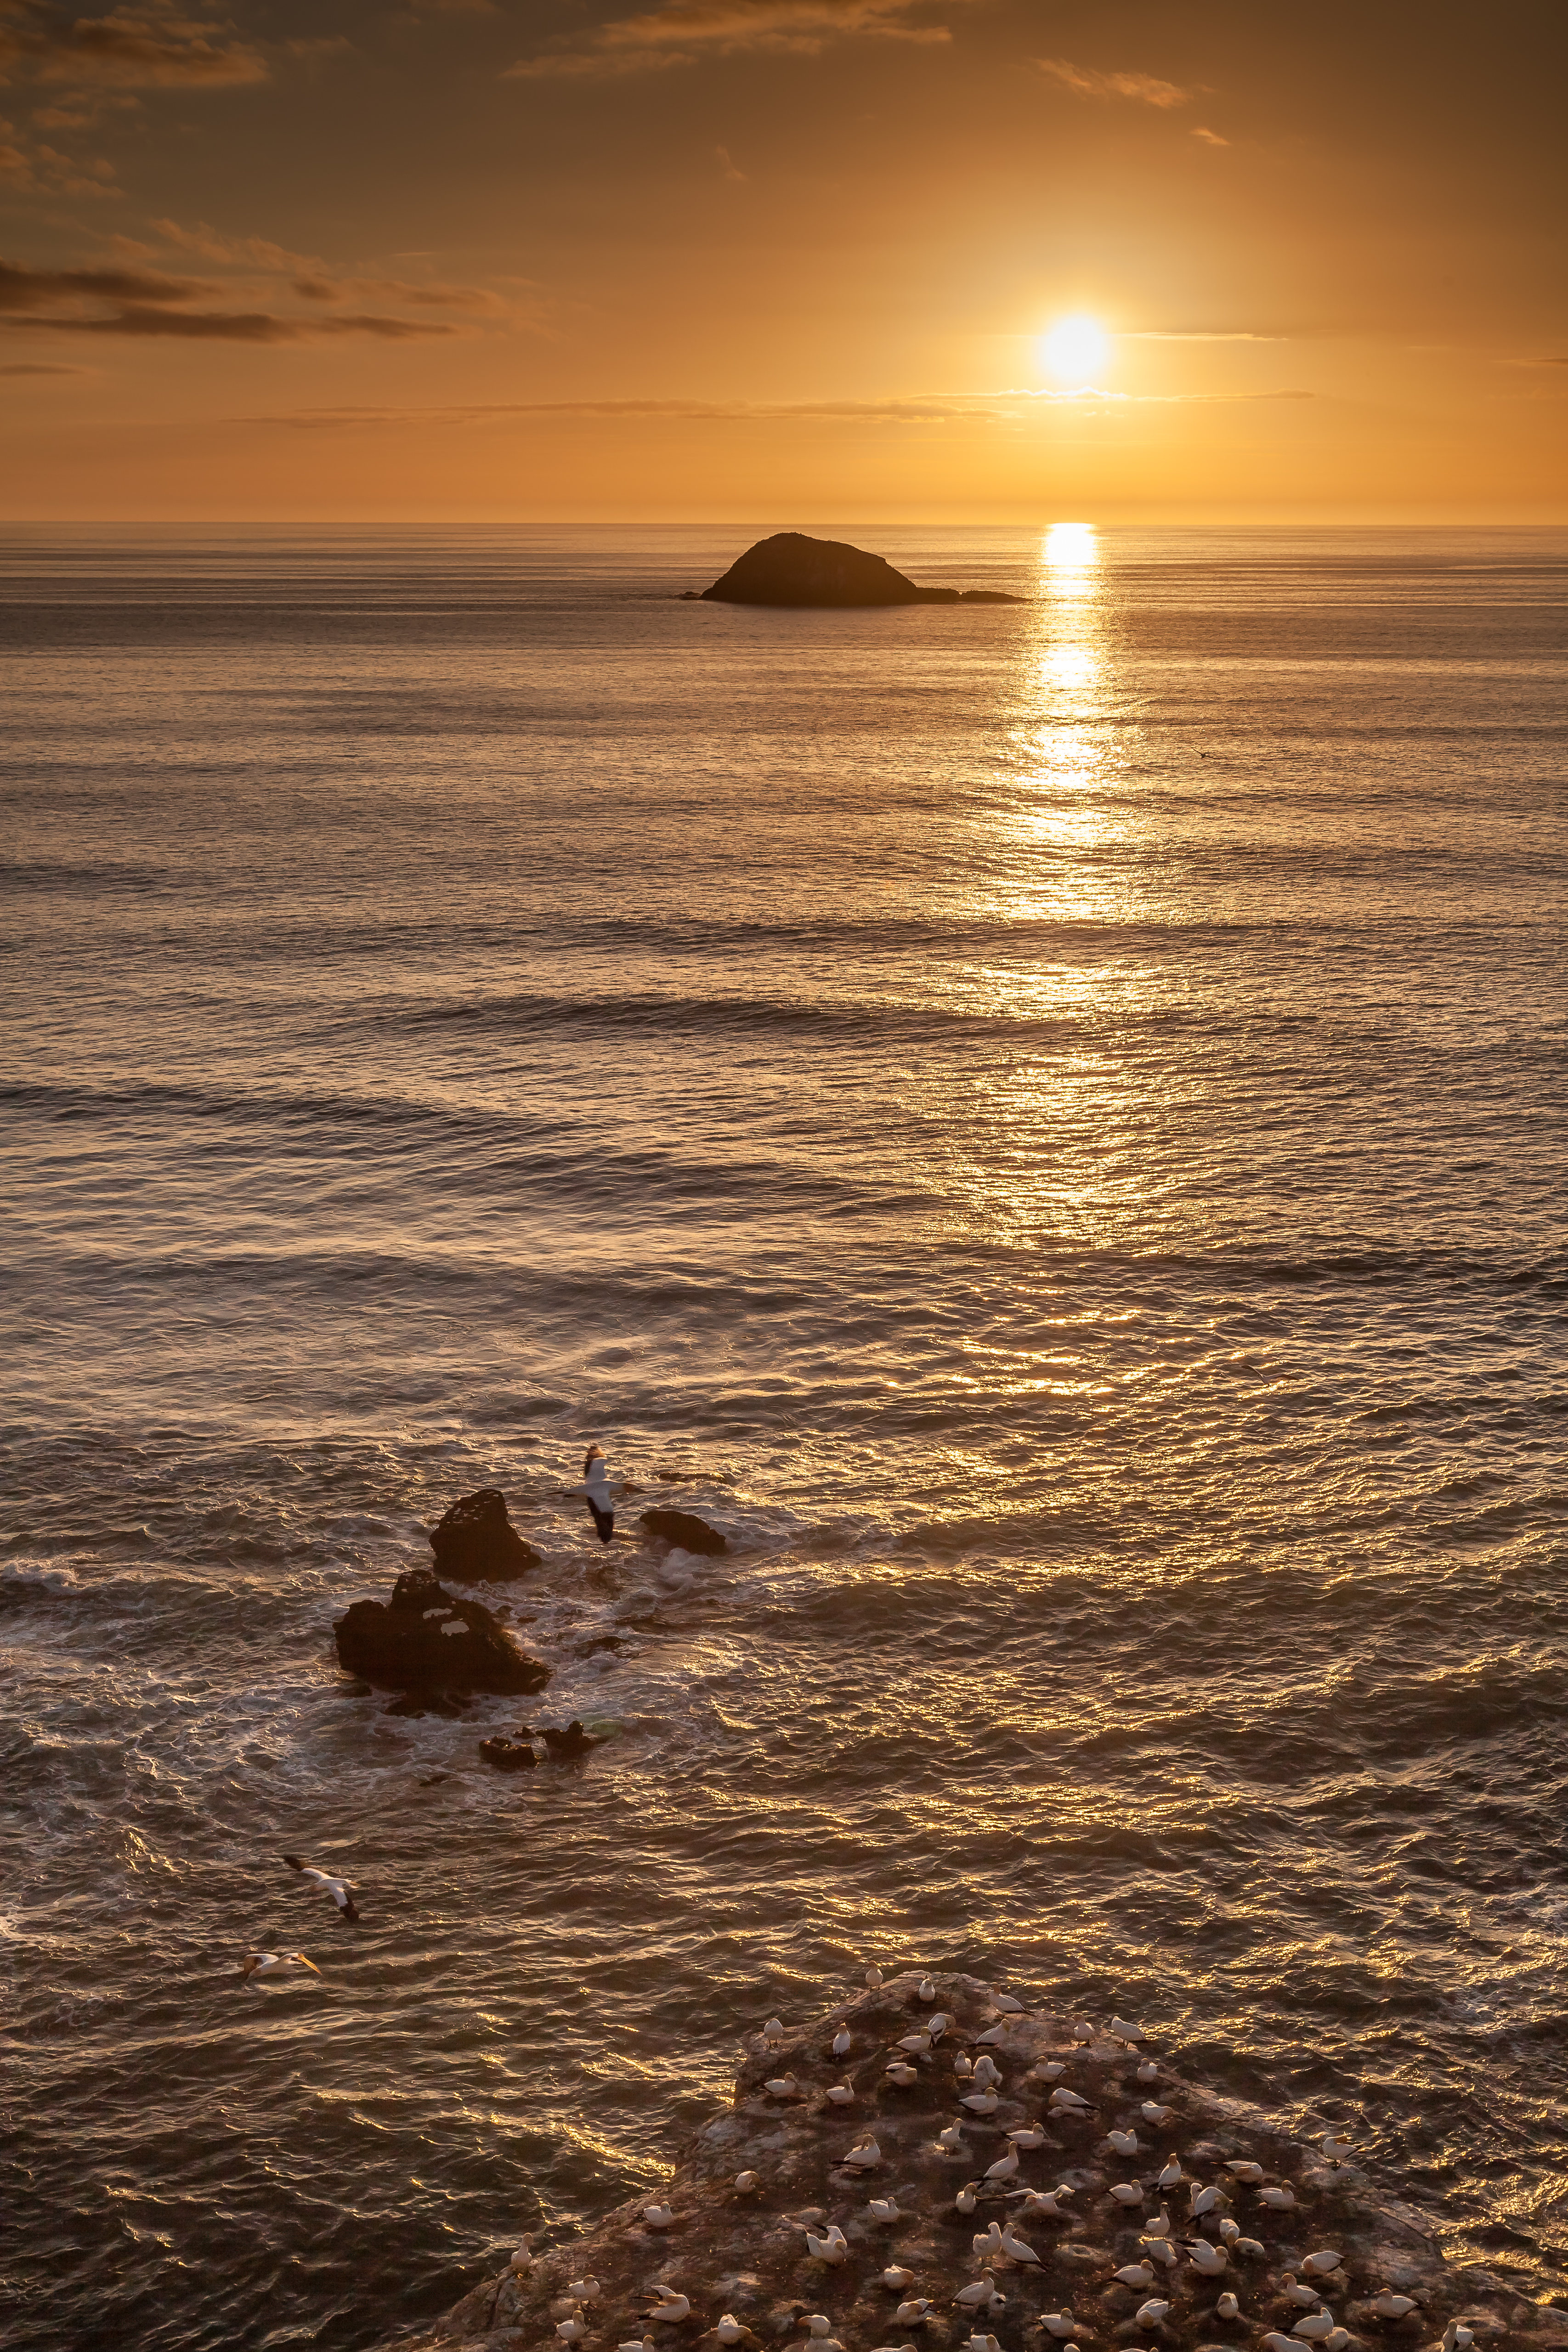 84161 download wallpaper Nature, Rocks, Sunset, Horizon, Seagulls screensavers and pictures for free